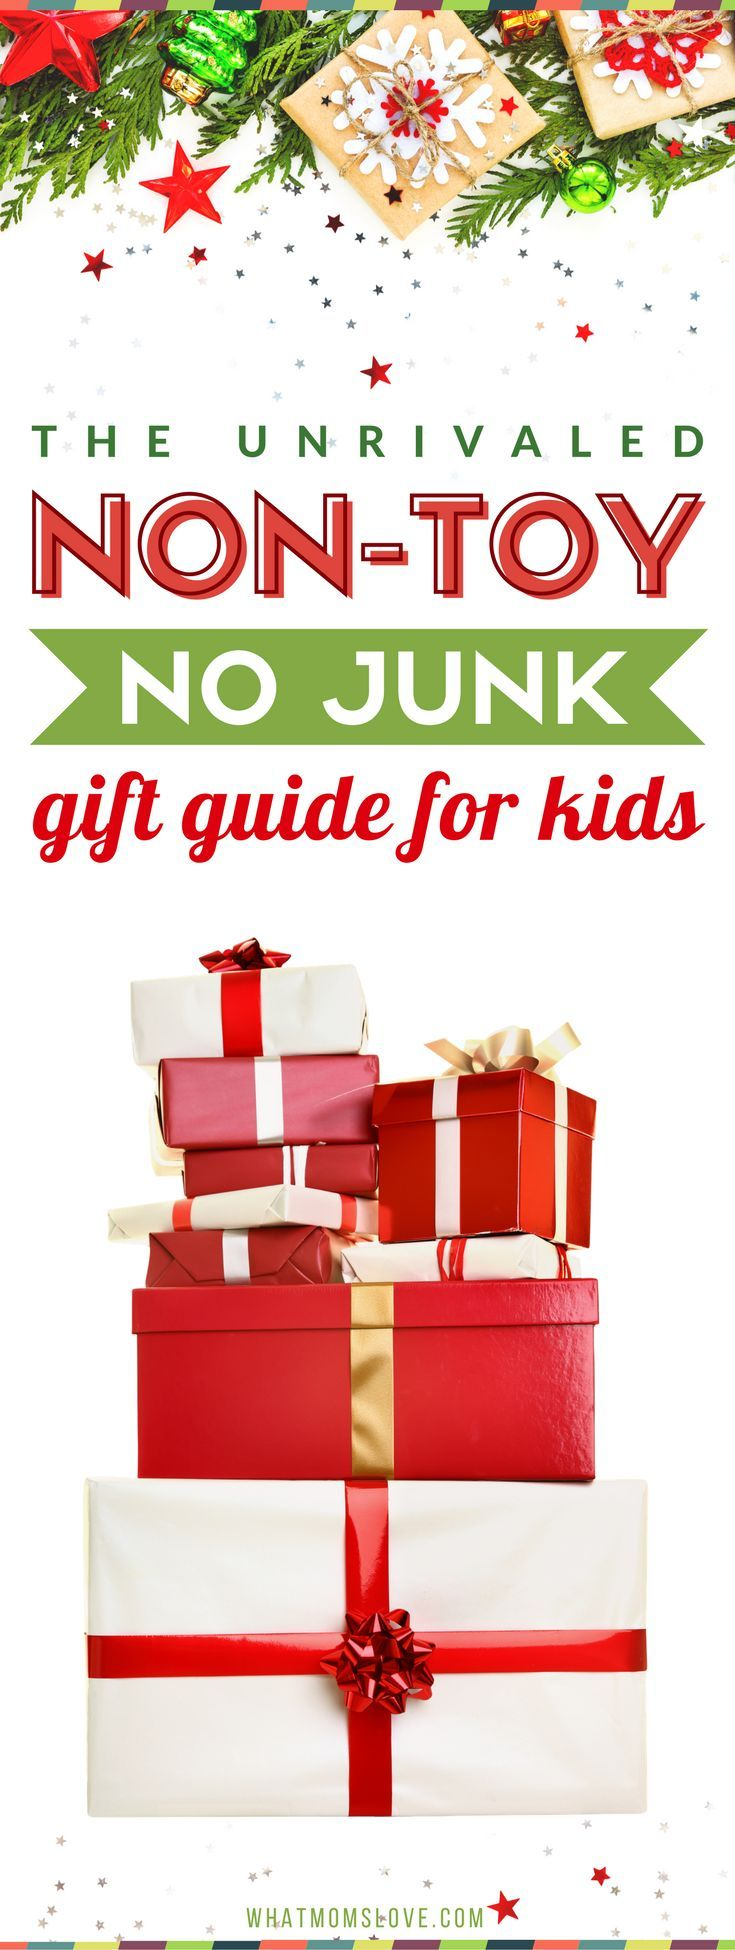 Best non toy gifts for kids | Fun ideas for boys and girls of all ages - from babies, to 1 year olds to toddlers to tweens and teens. High quality, fun gifts that aren't toys - perfect for Christmas, the holidays and birthdays.